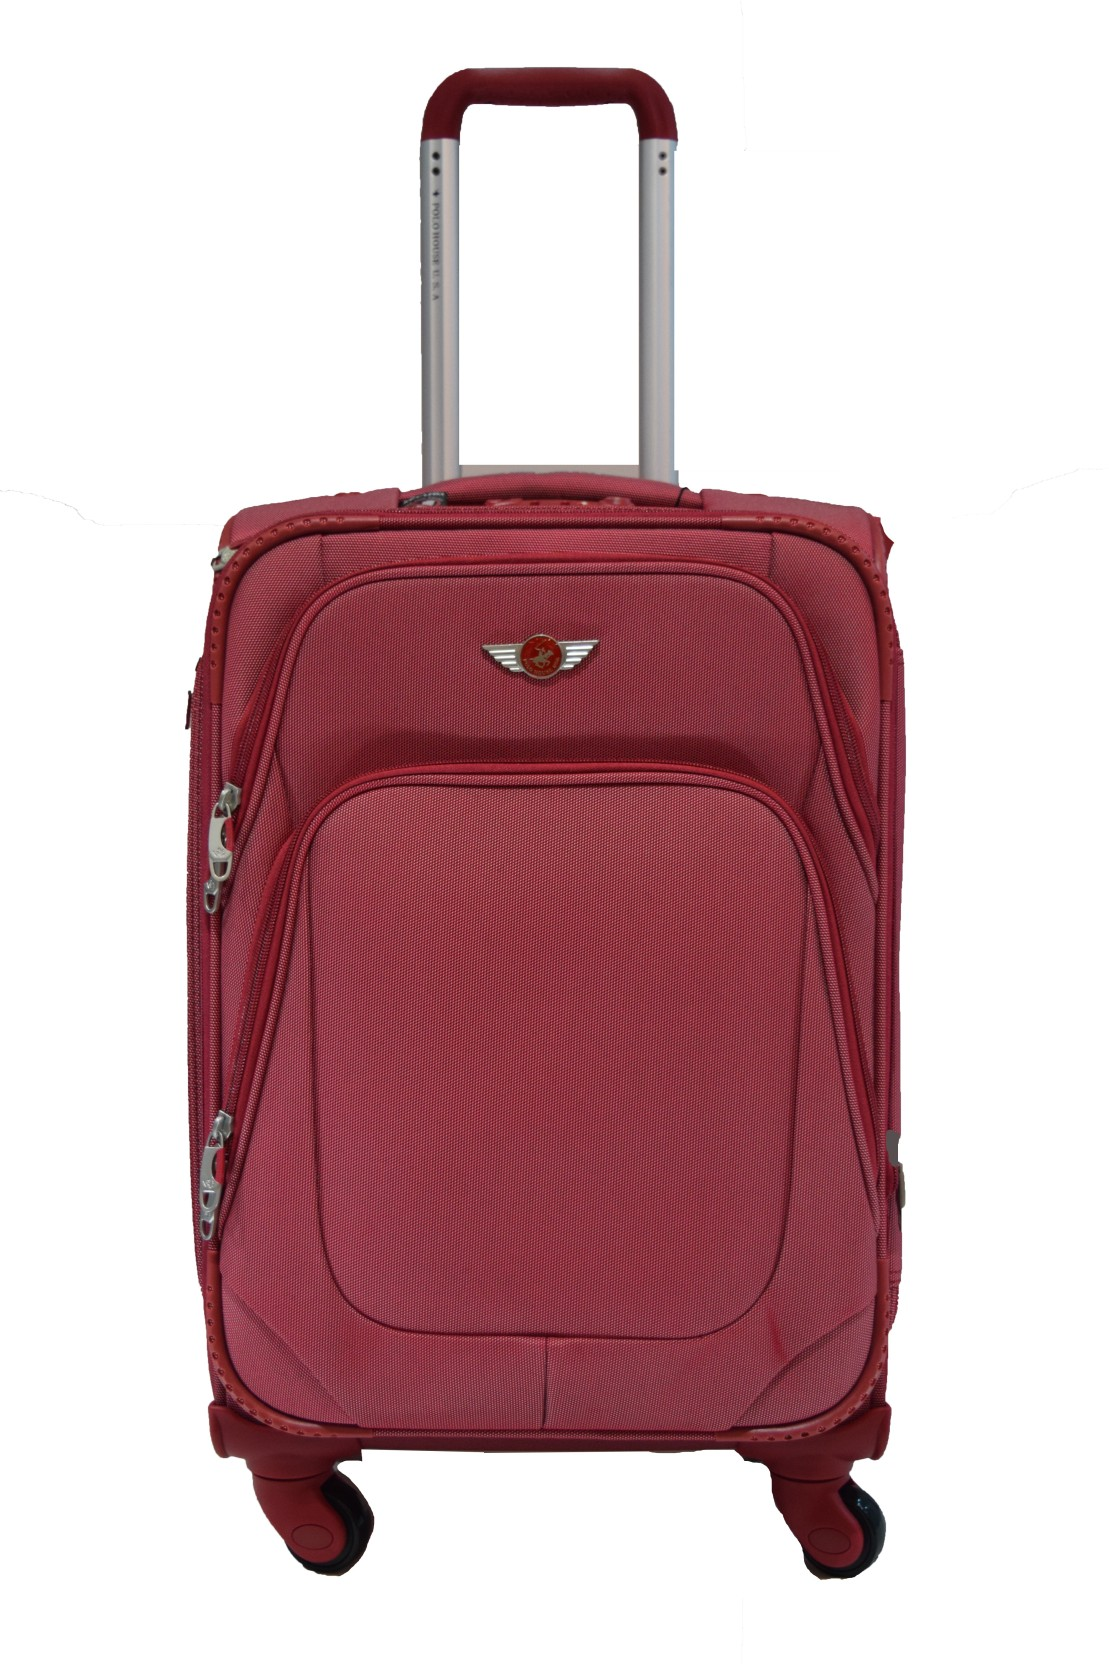 28ddf573b27 Polo House USA 8669s Expandable Check-in Luggage - 28 inch Red ...